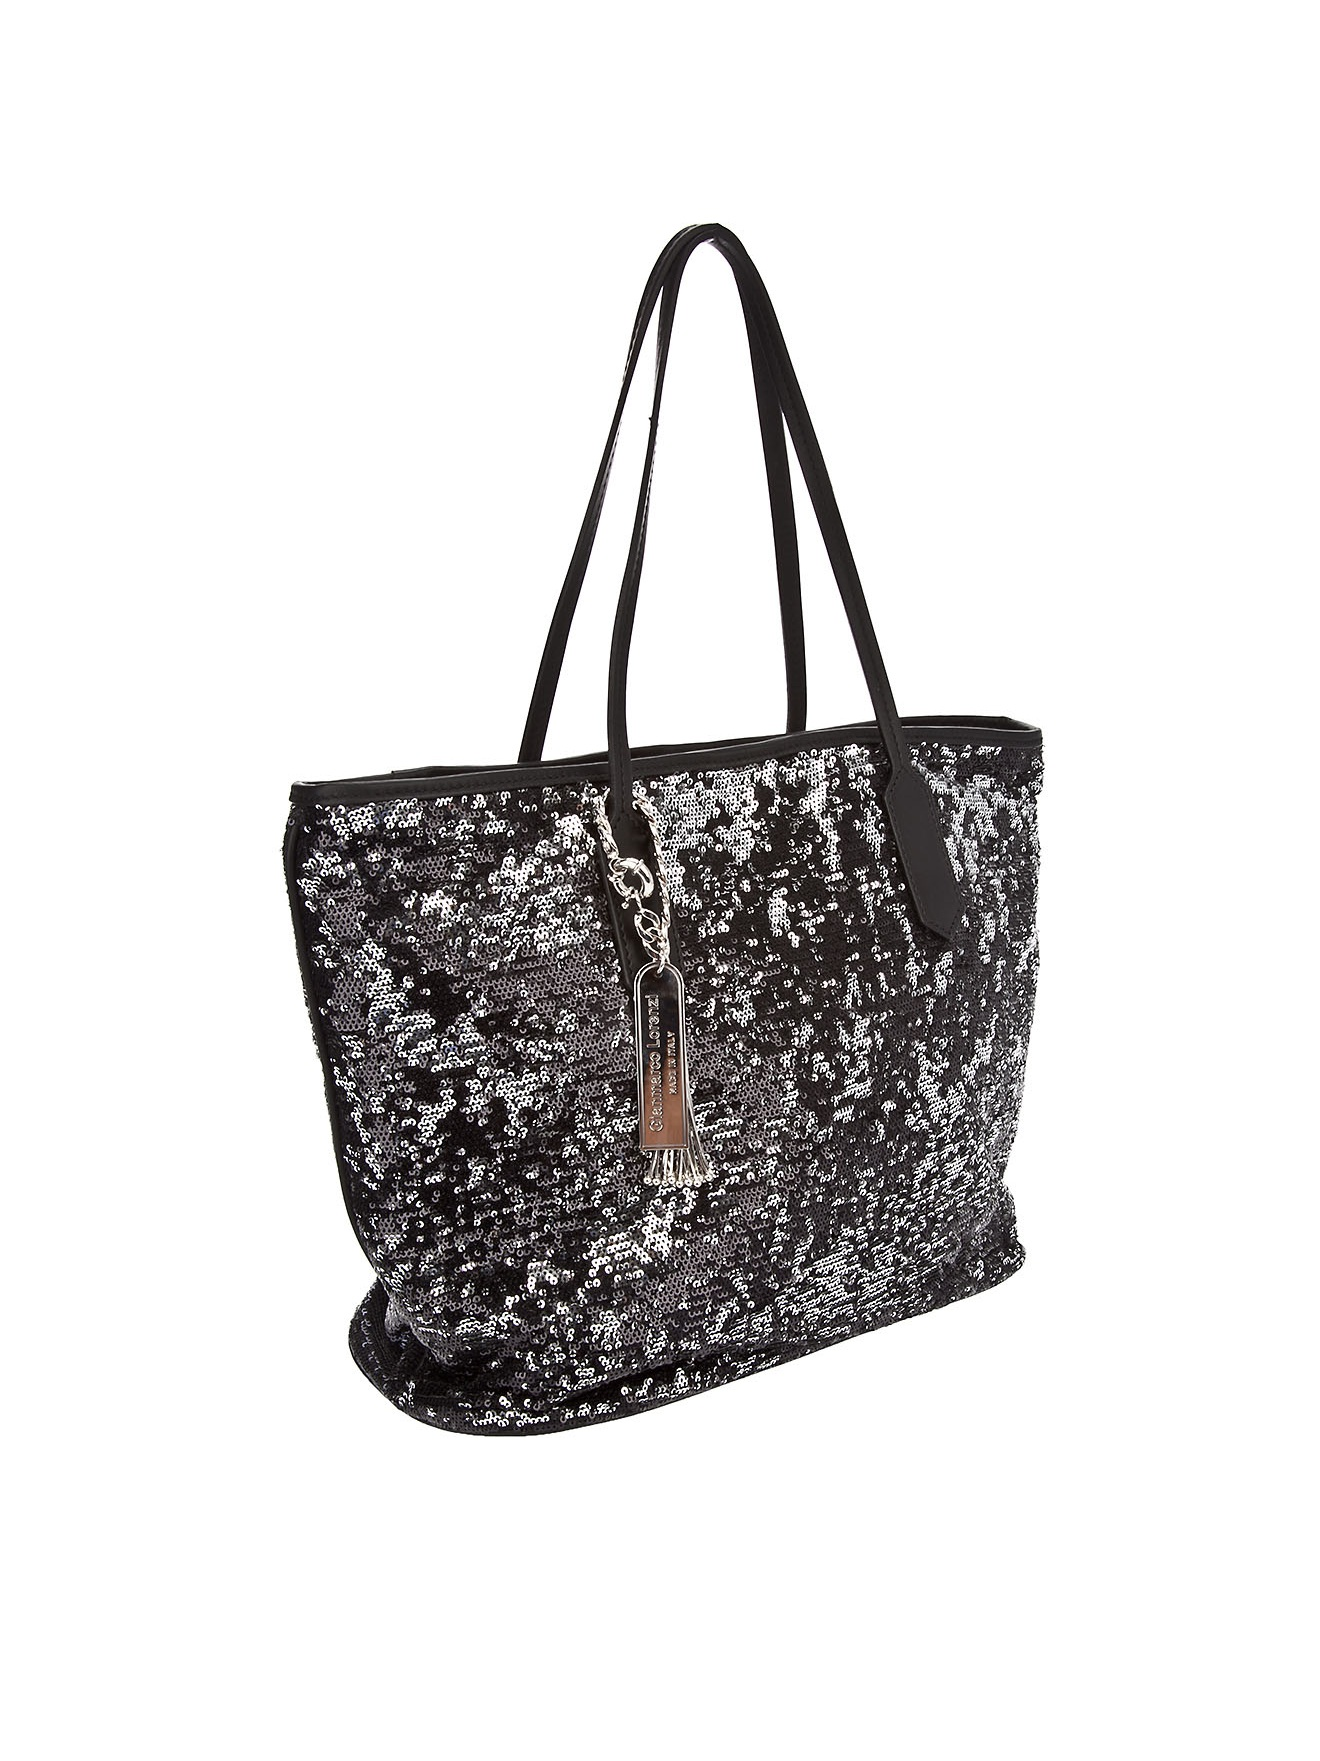 Black Gianmarco In Tote Lorenzi Bag Lyst Sequin SqwHUqXxB